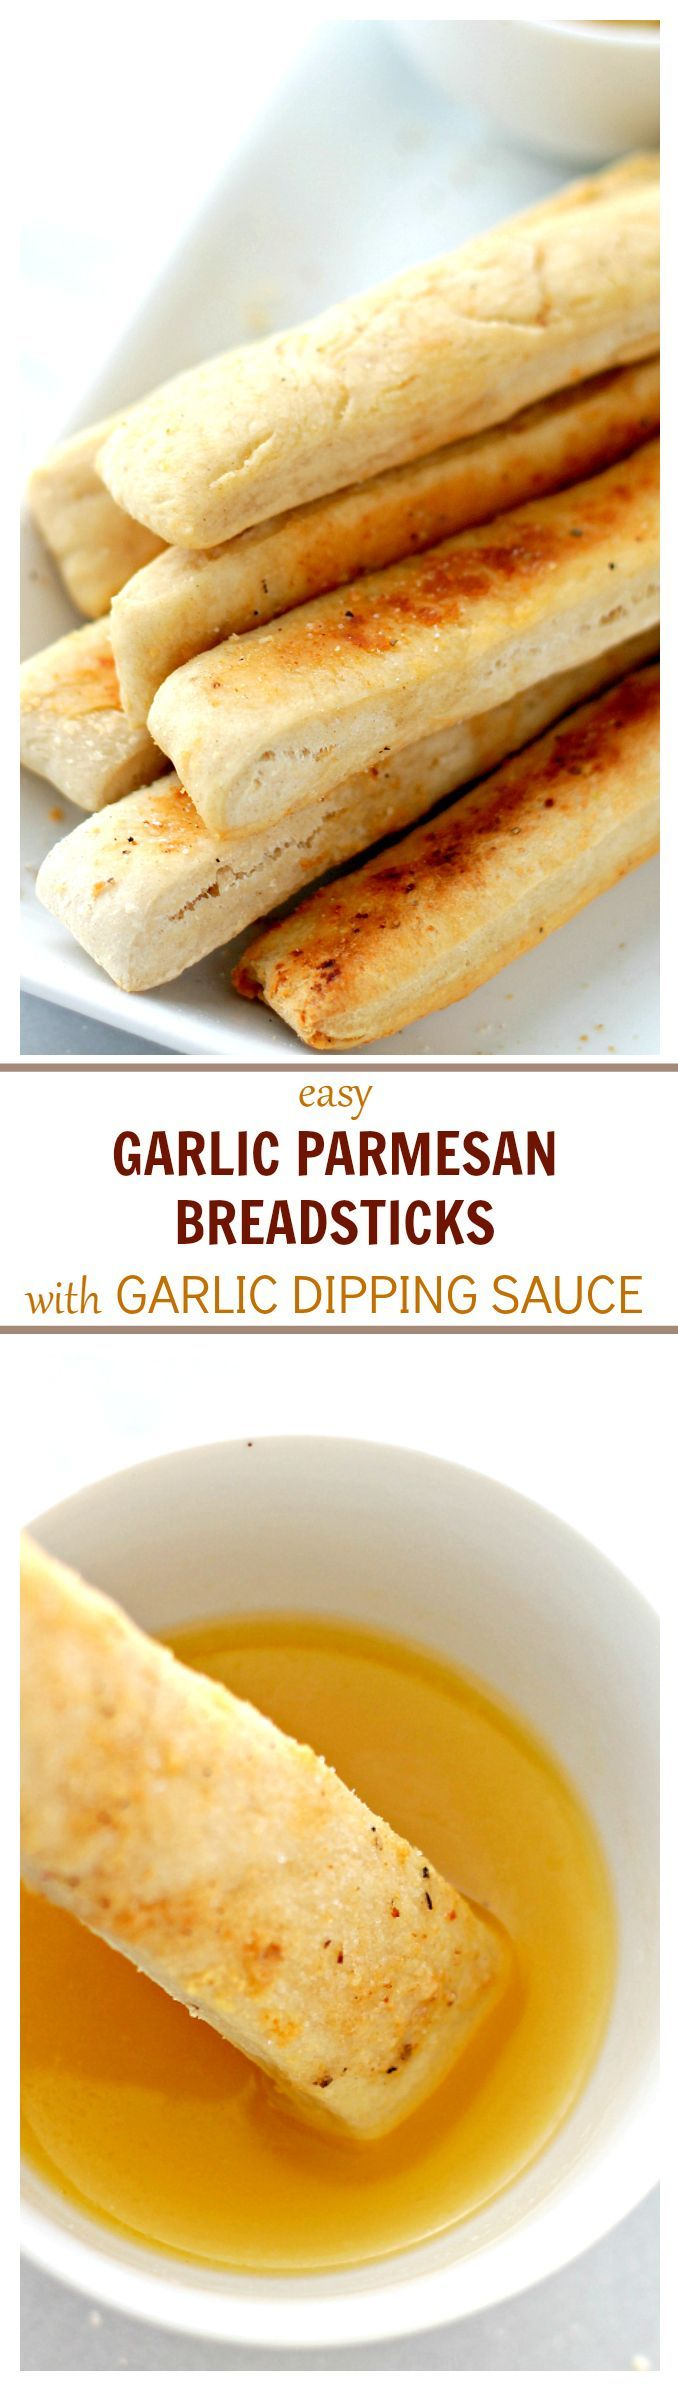 Easy Garlic Parmesan Breadsticks with Garlic Dipping Sauce   www.diethood.com   Sprinkled with Parmesan Cheese and dipped in a delicious Garlic Dipping sauce, these homemade breadsticks are not only easy to make, but they come together in just 30 minutes from start to finish!